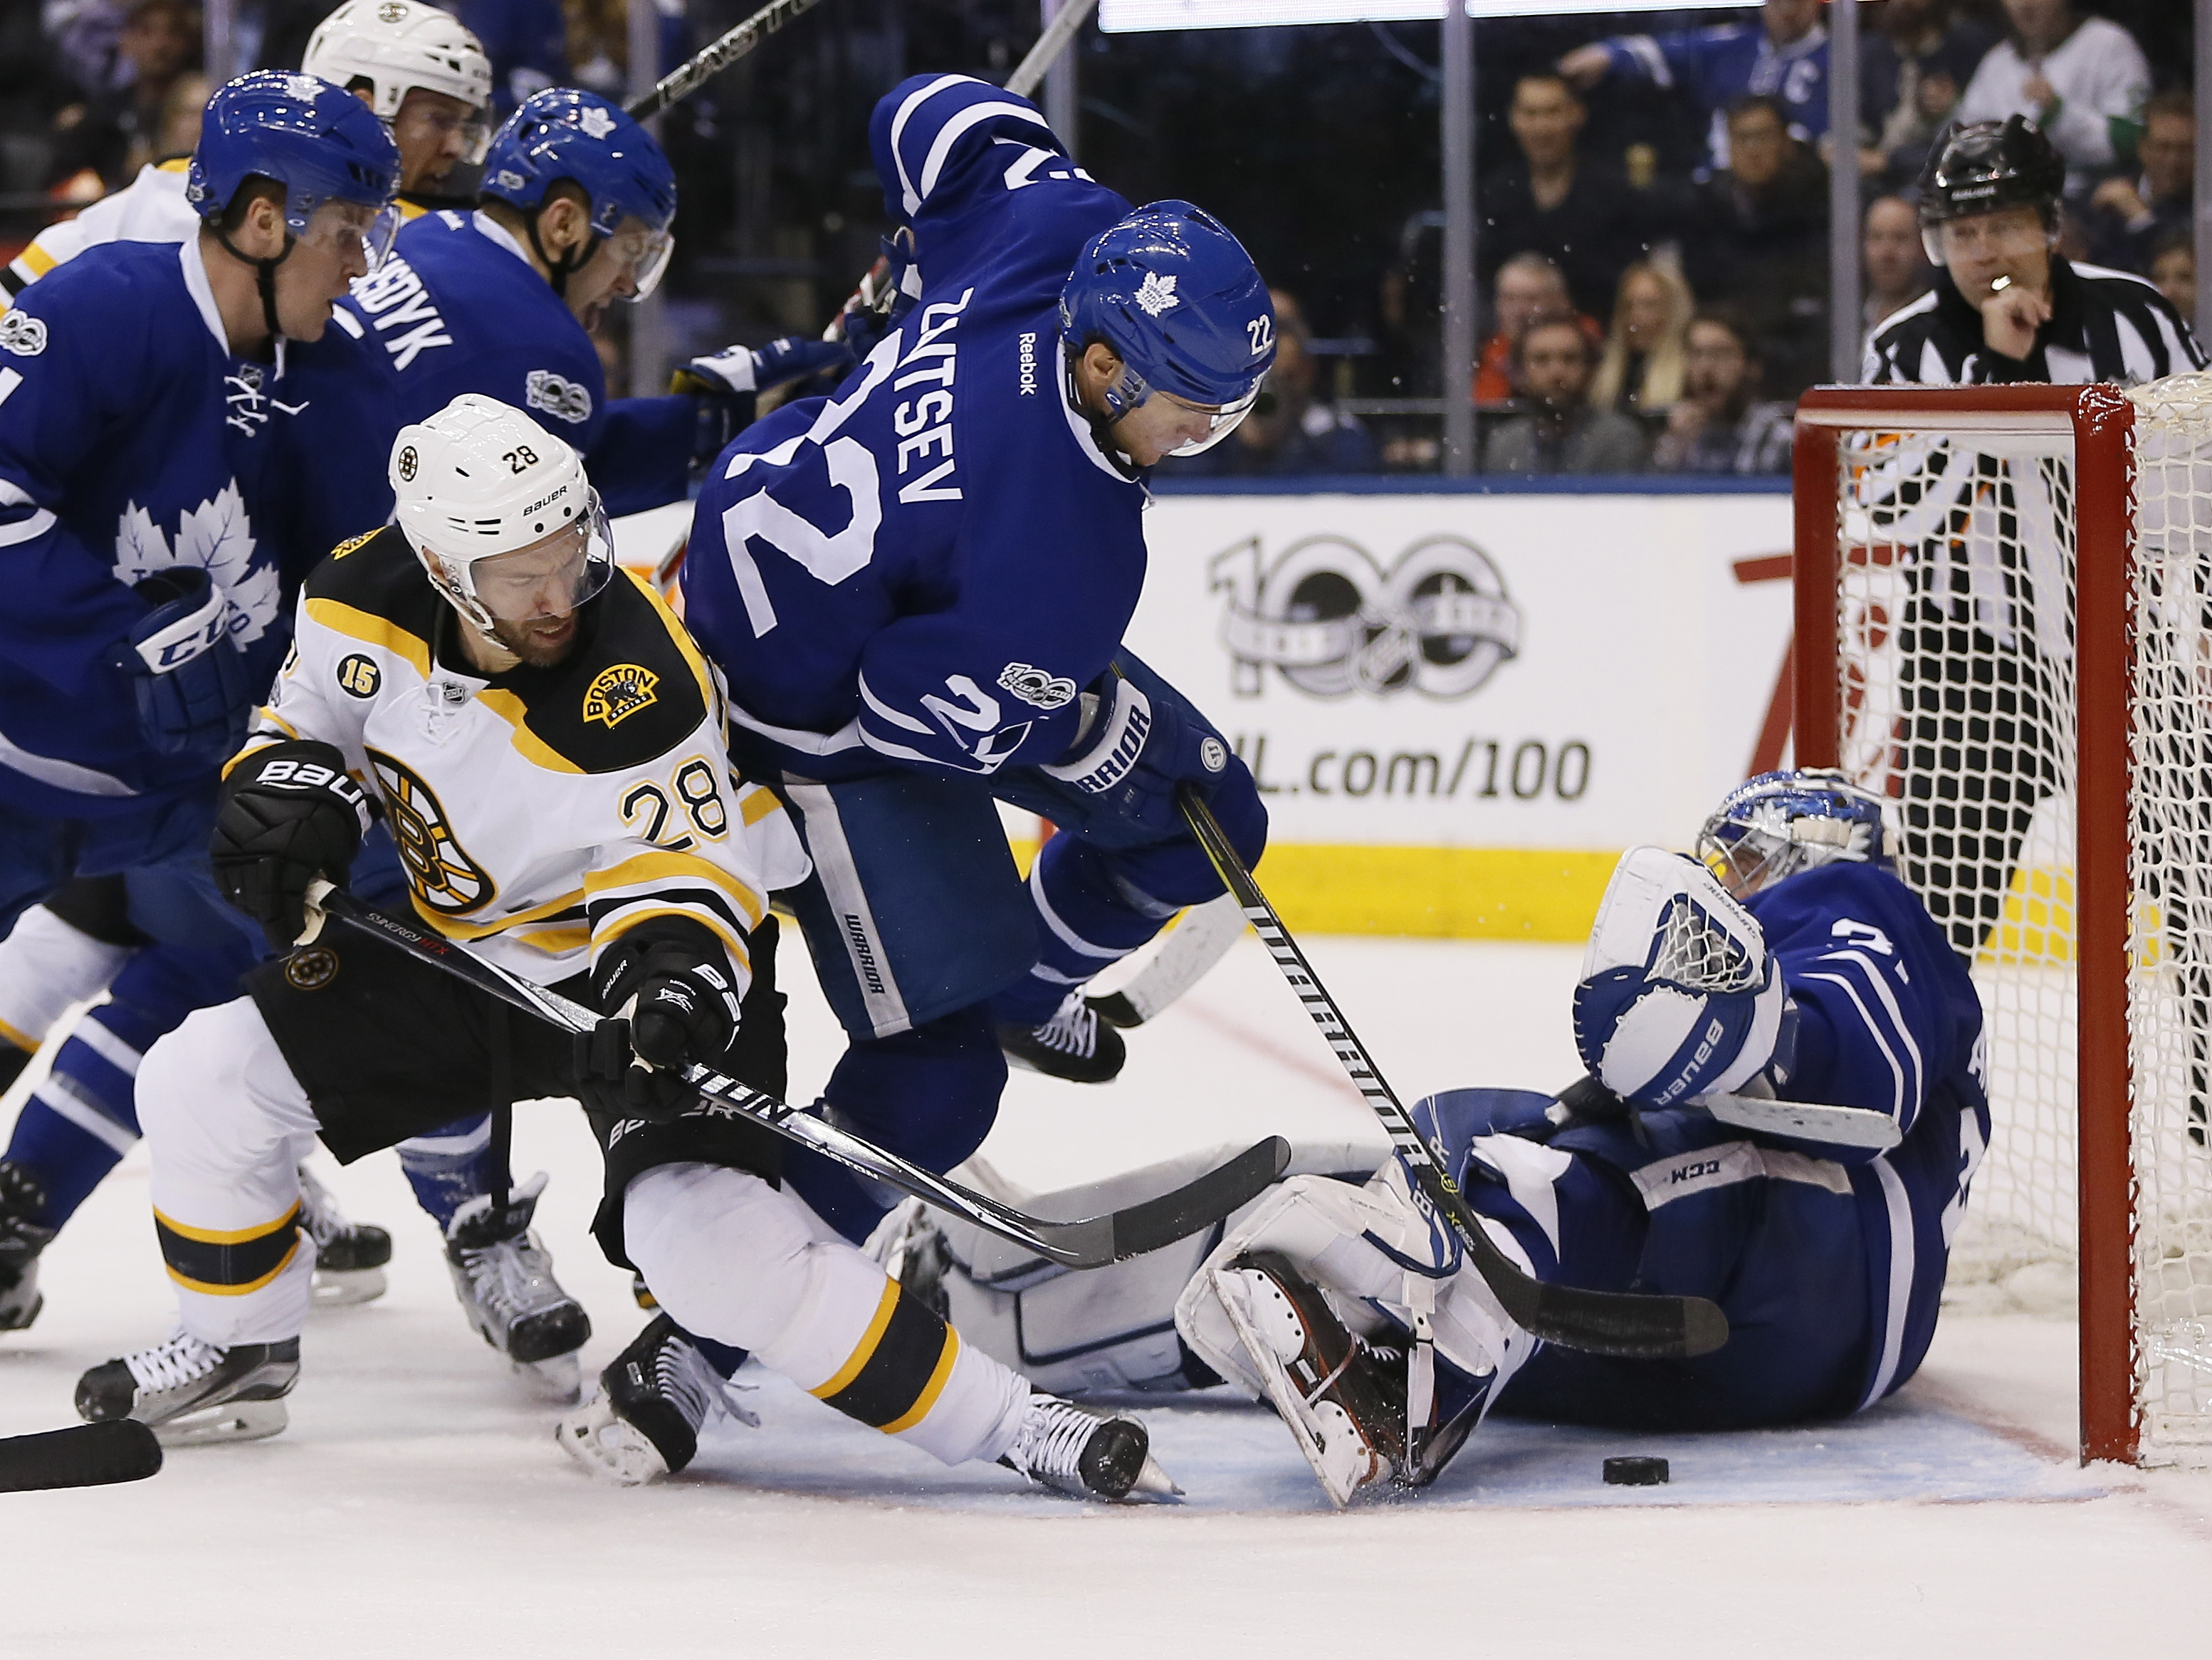 9961332-nhl-boston-bruins-at-toronto-maple-leafs